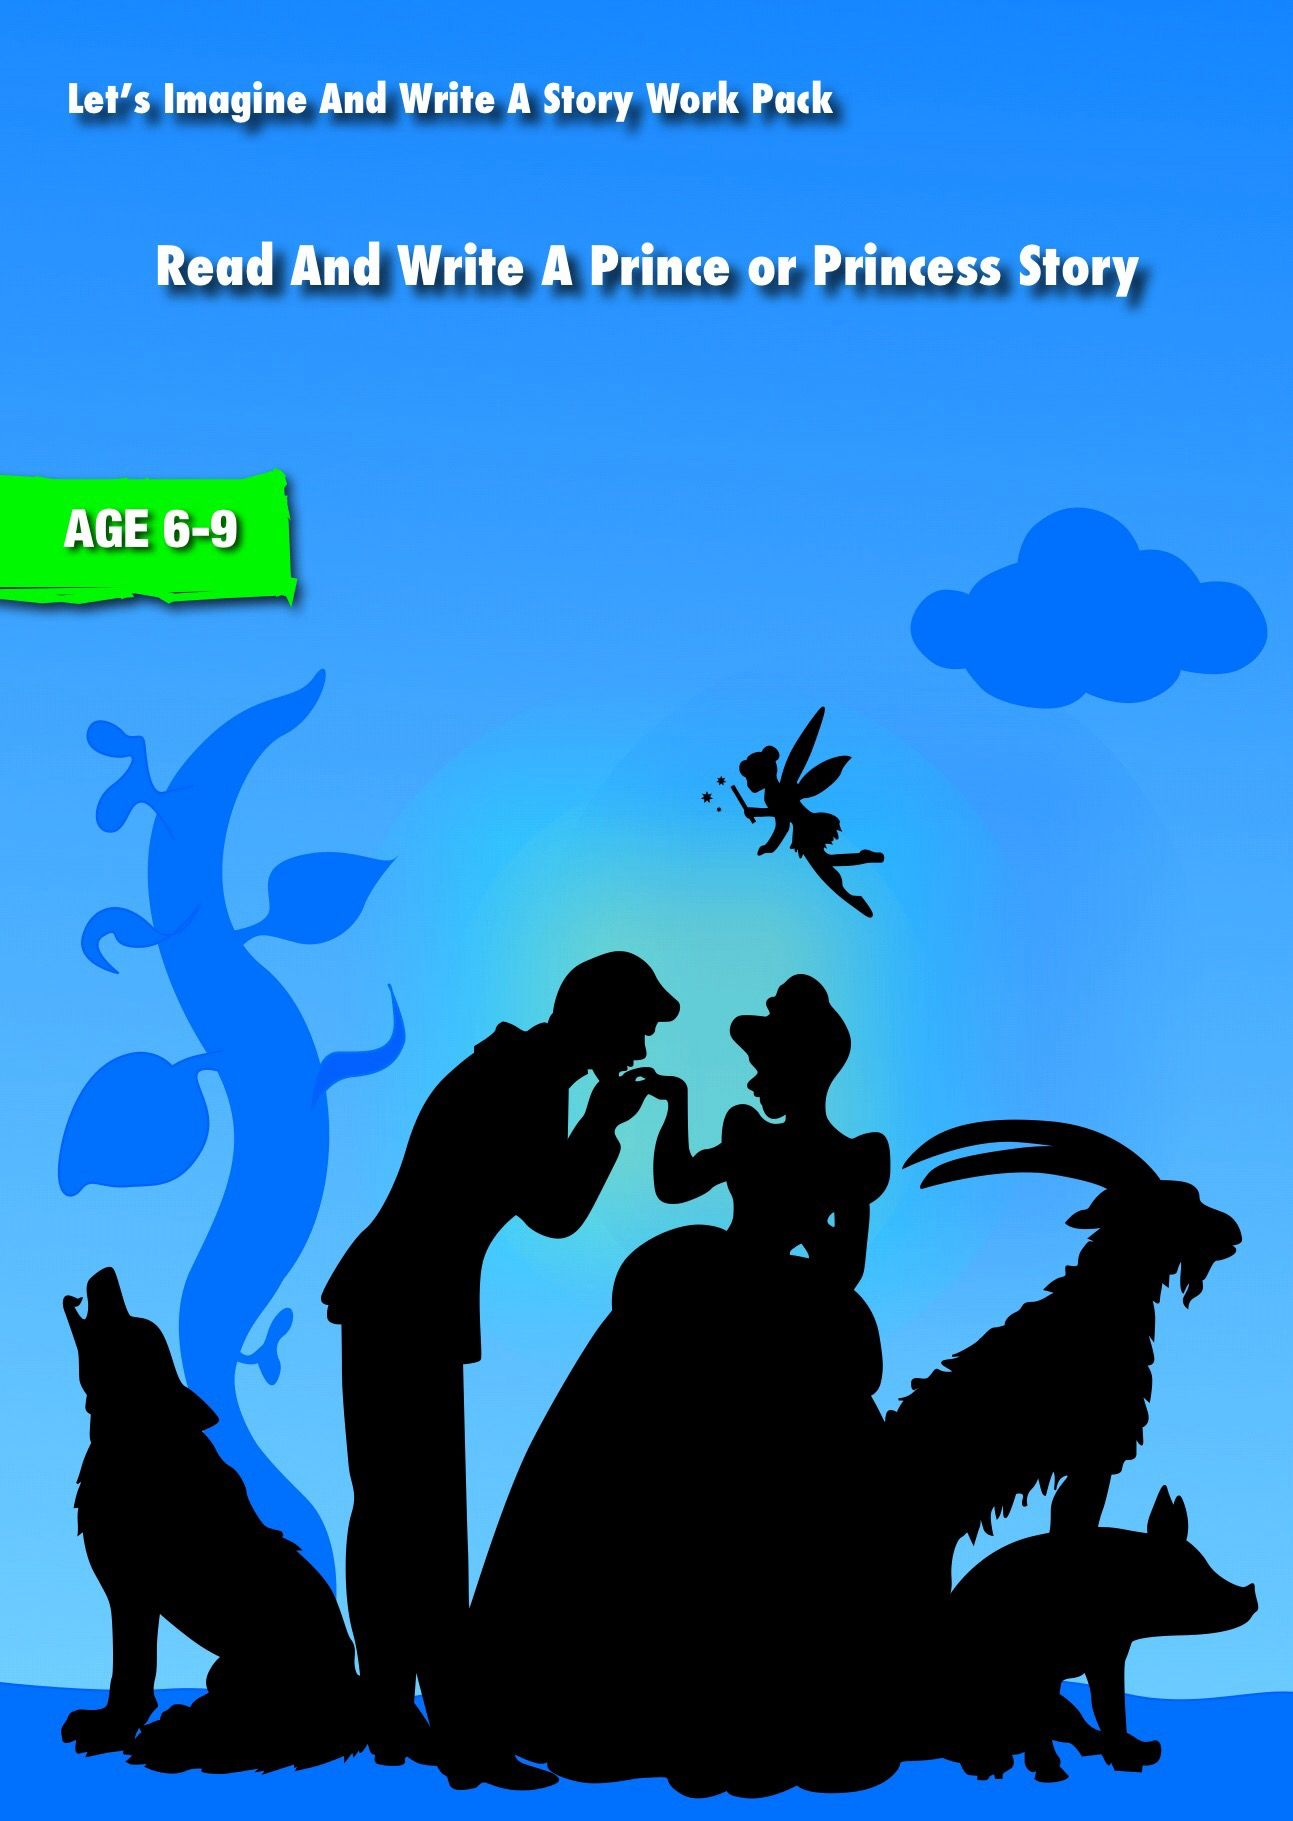 Plan And Write A Prince Or Princess Story (6-9 years